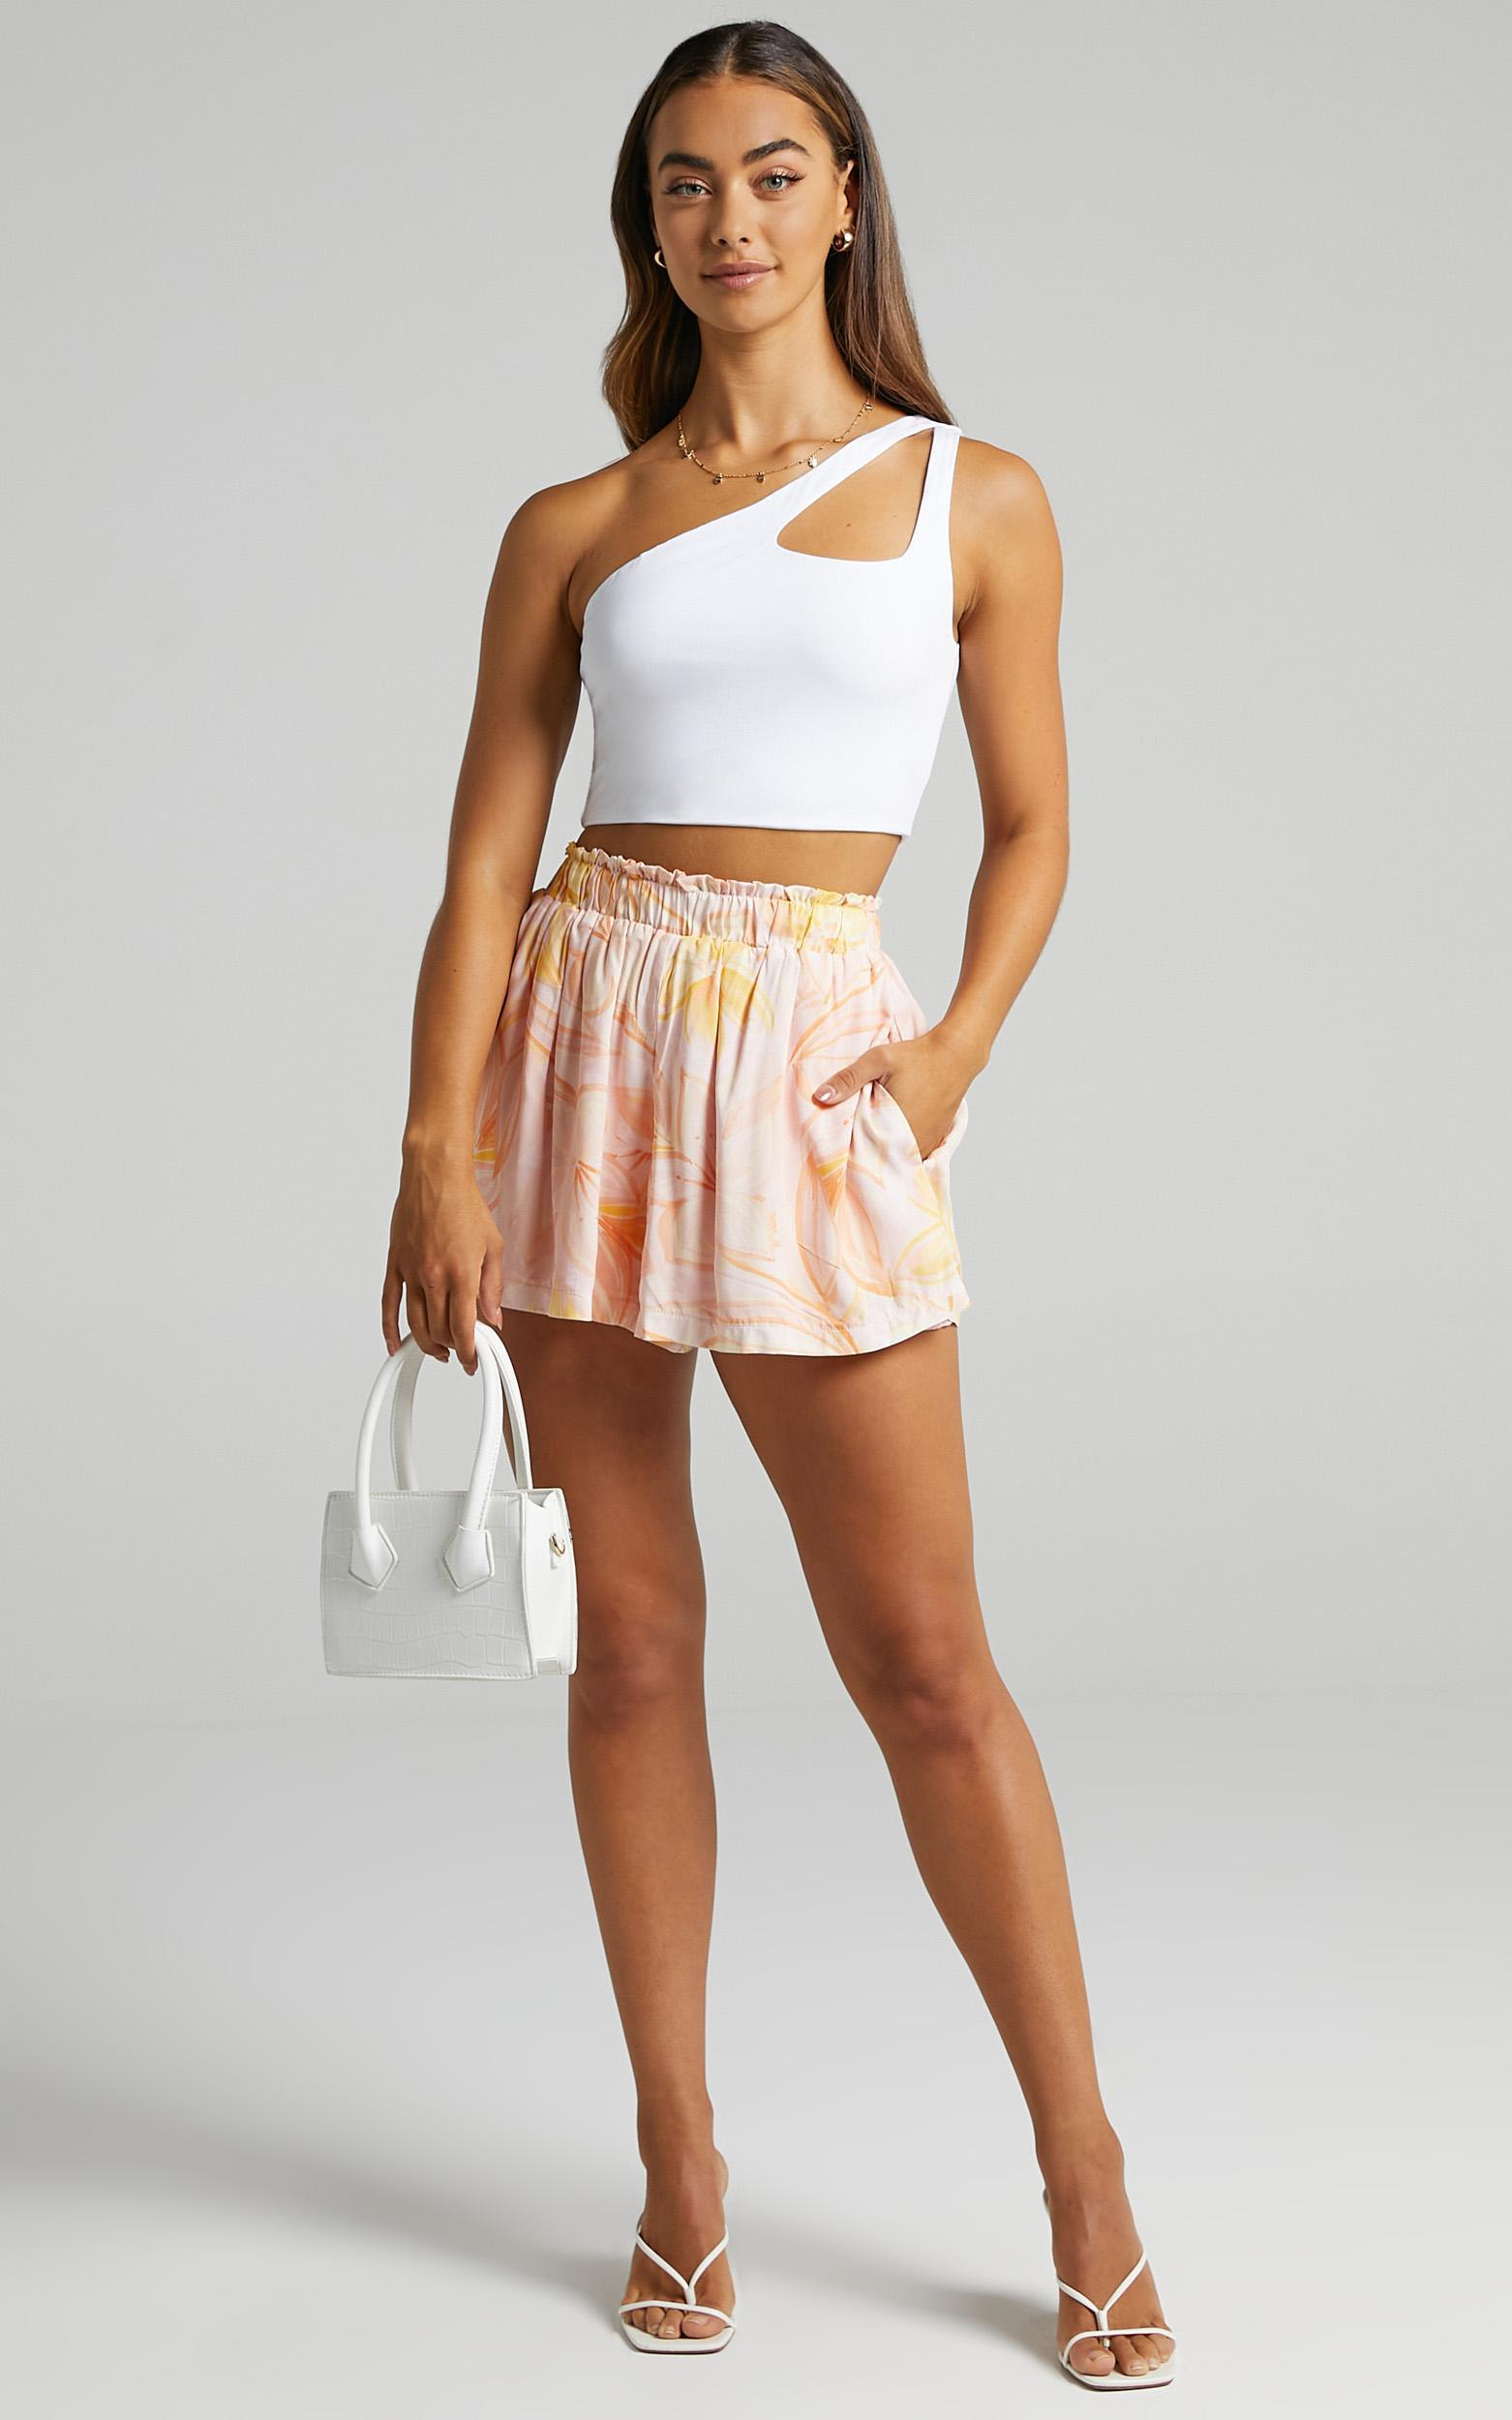 Banbury Shorts in Summer Floral - 6 (XS), Pink, hi-res image number null